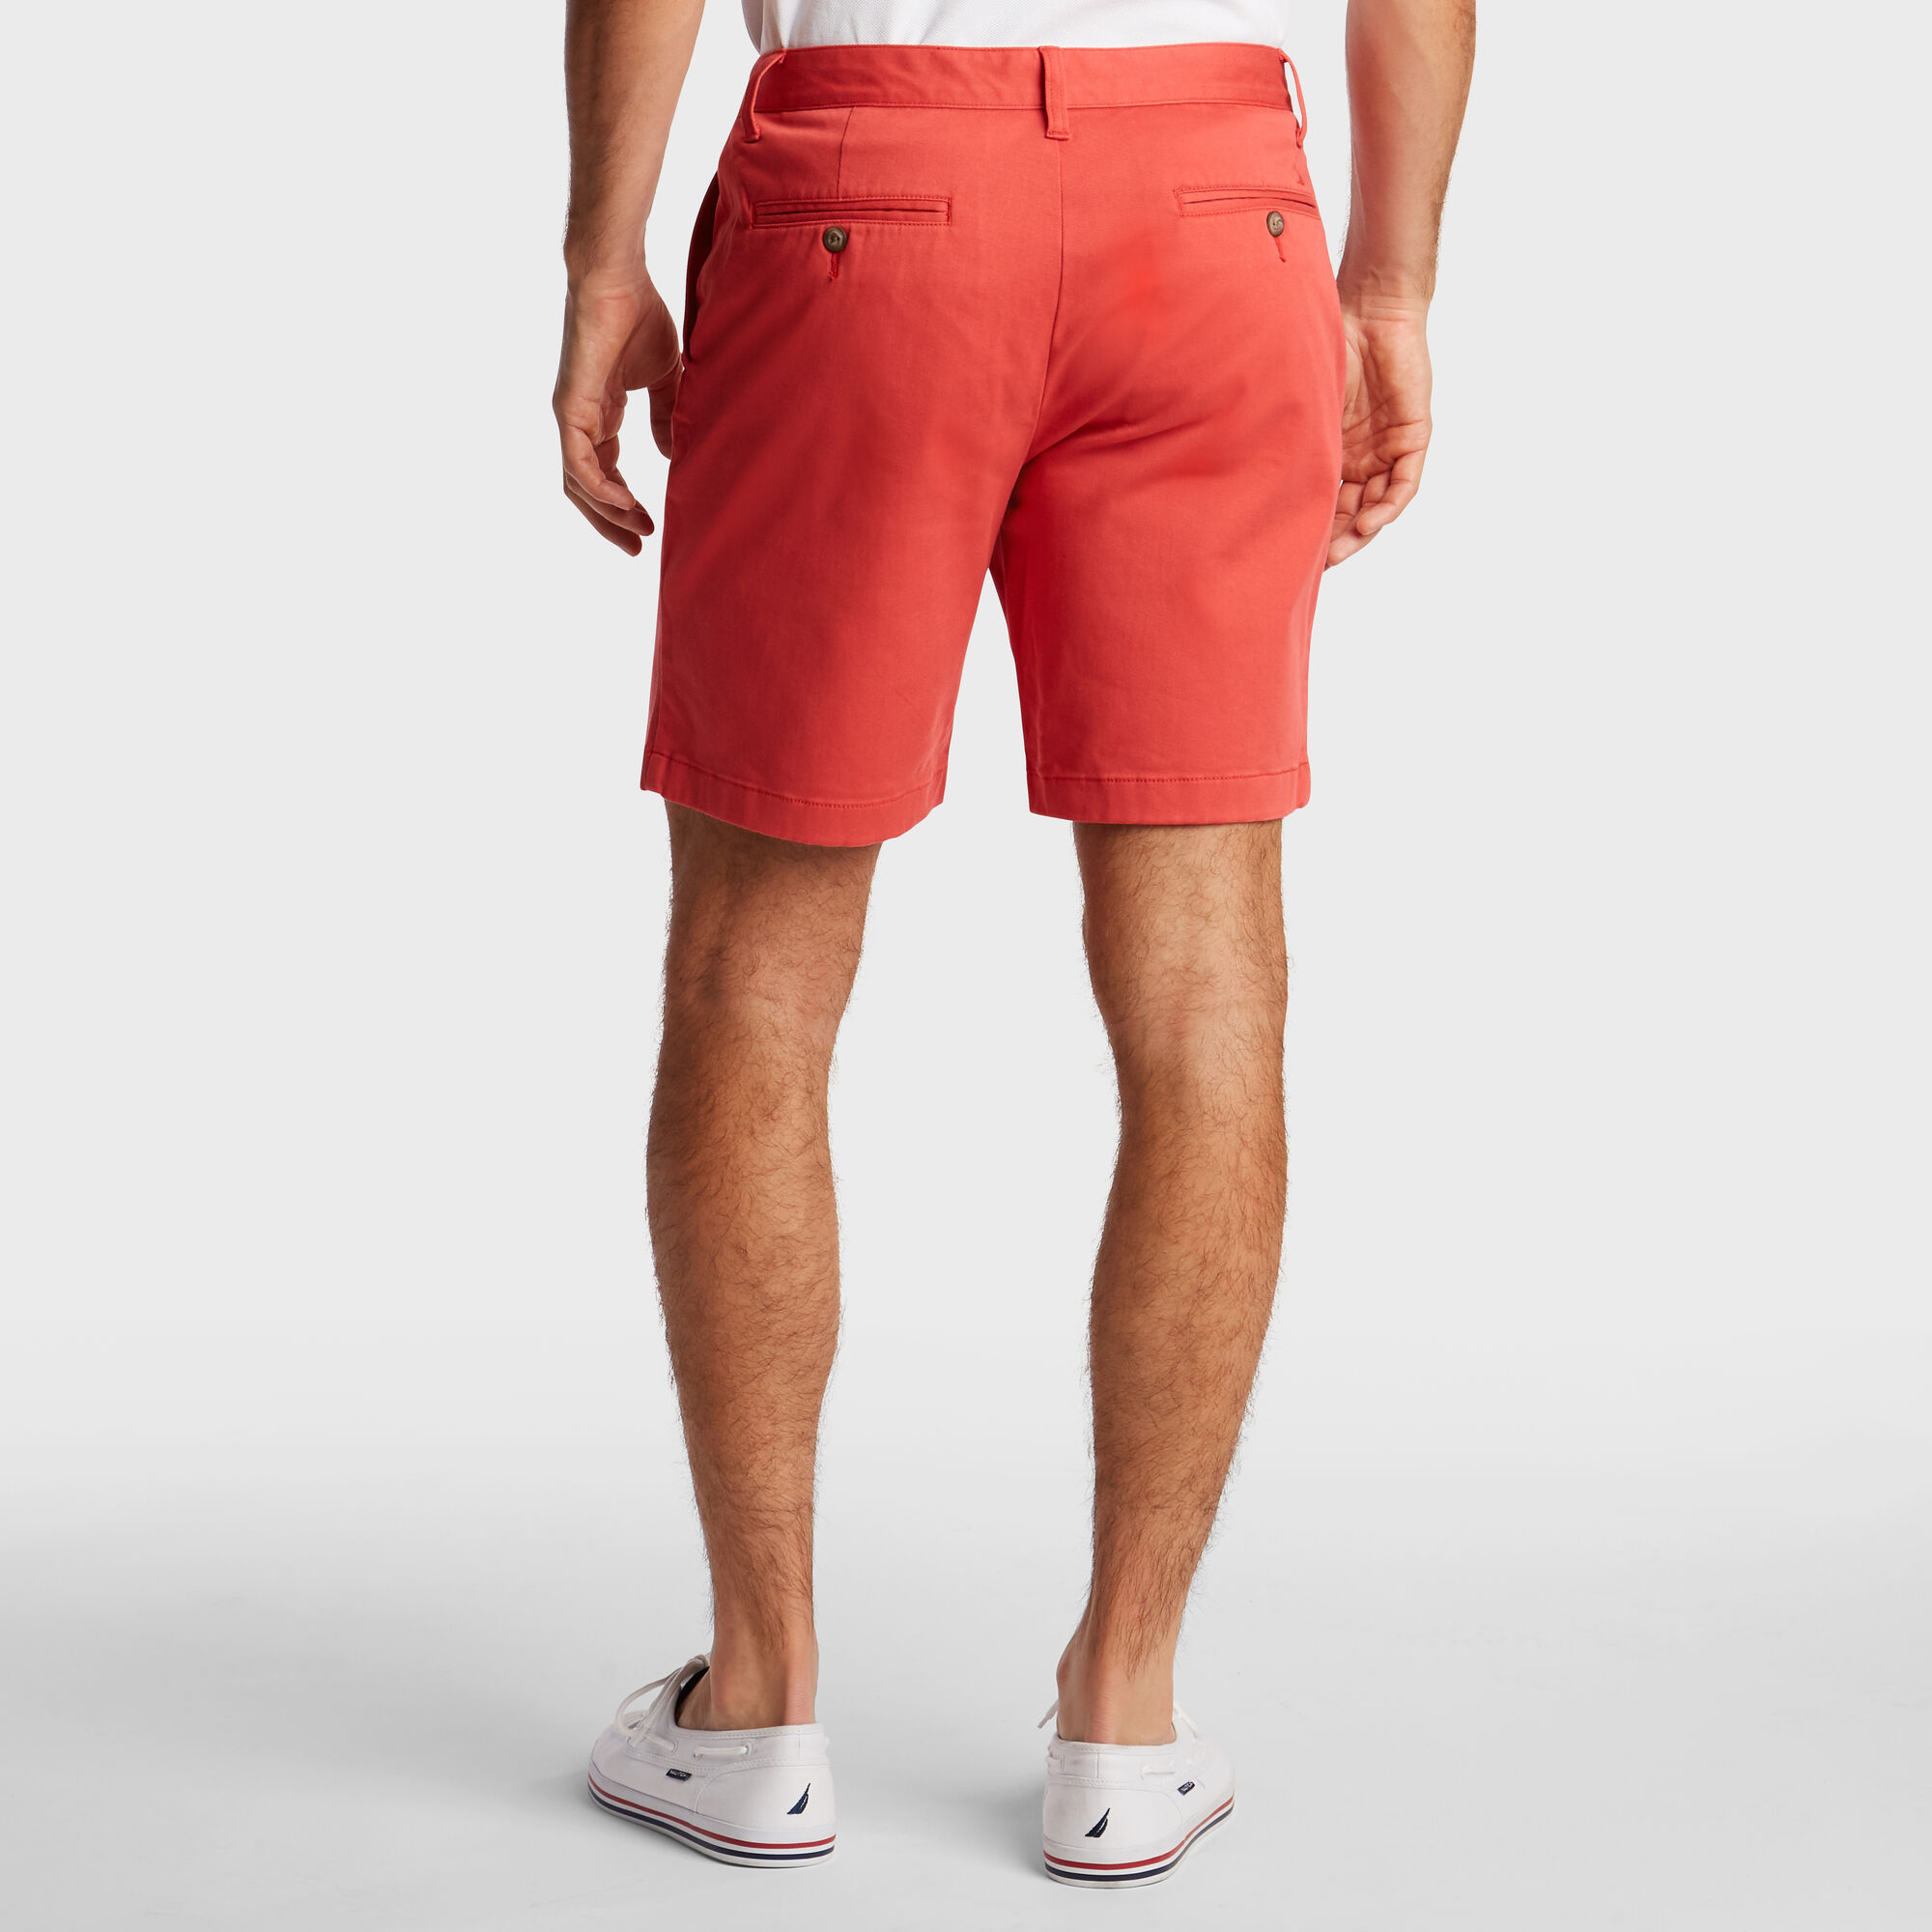 Nautica-Mens-8-5-034-Classic-Fit-Deck-Short-With-Stretch thumbnail 44